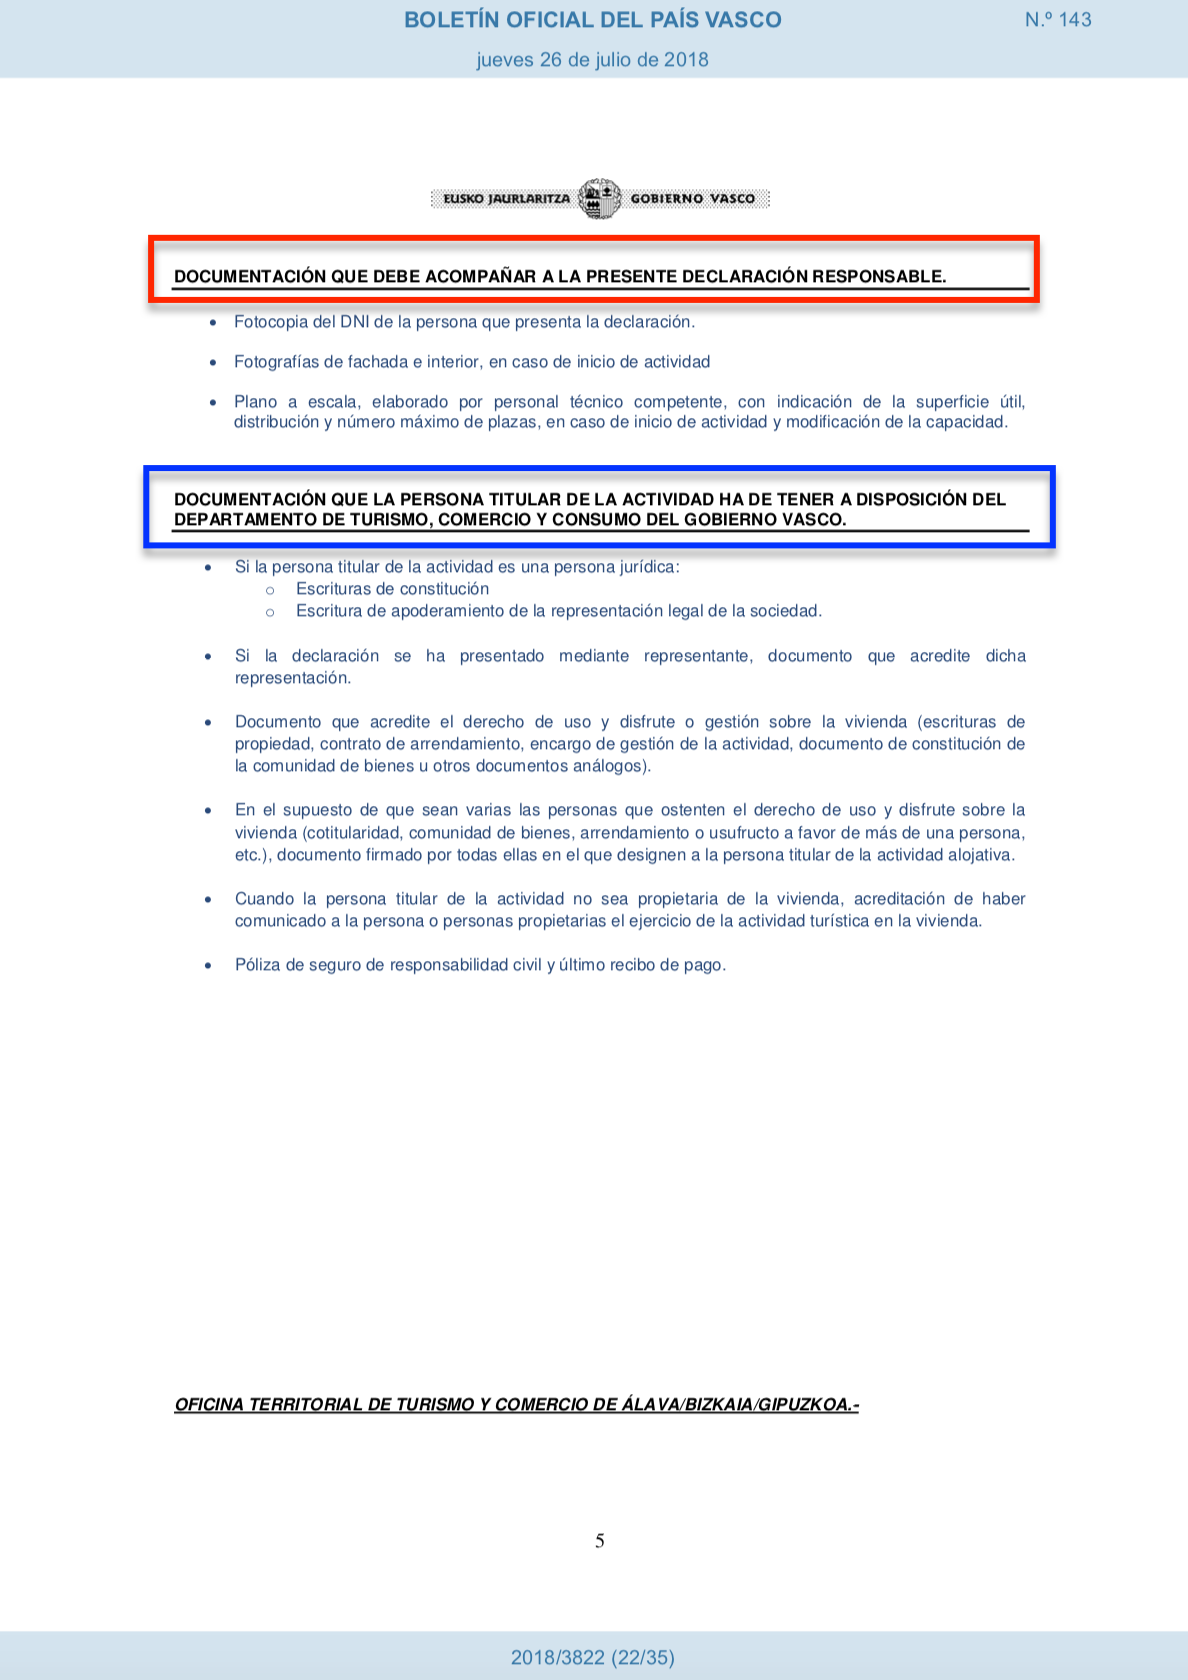 Documentos de la Declaración responsable